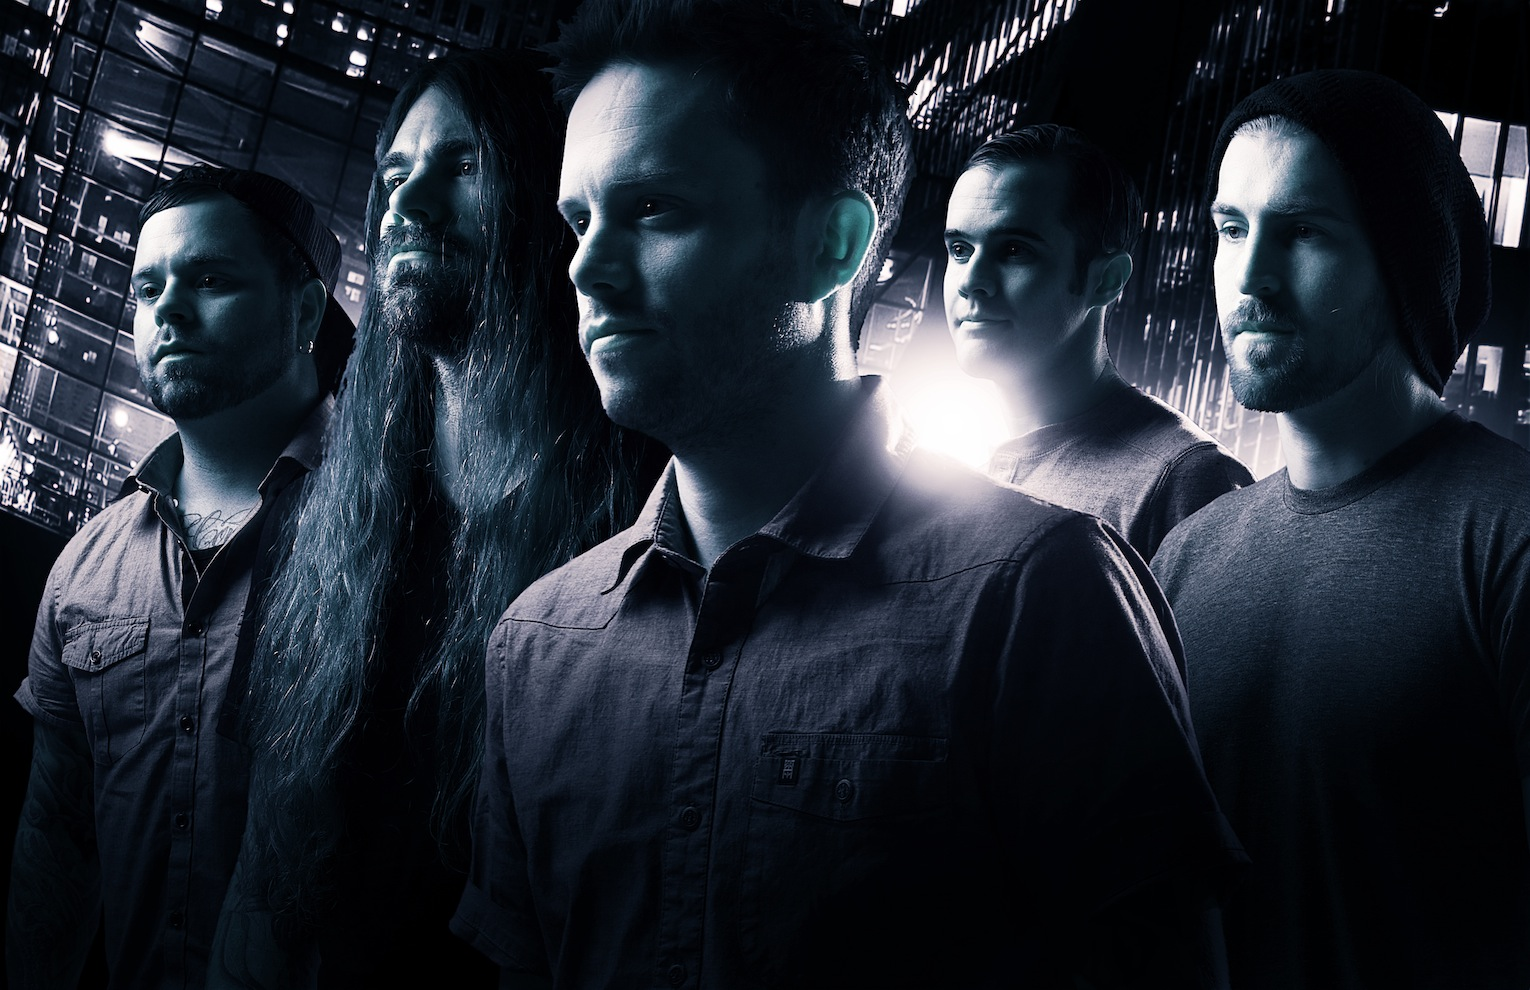 Between The Buried And Me Announces U.S. Tour